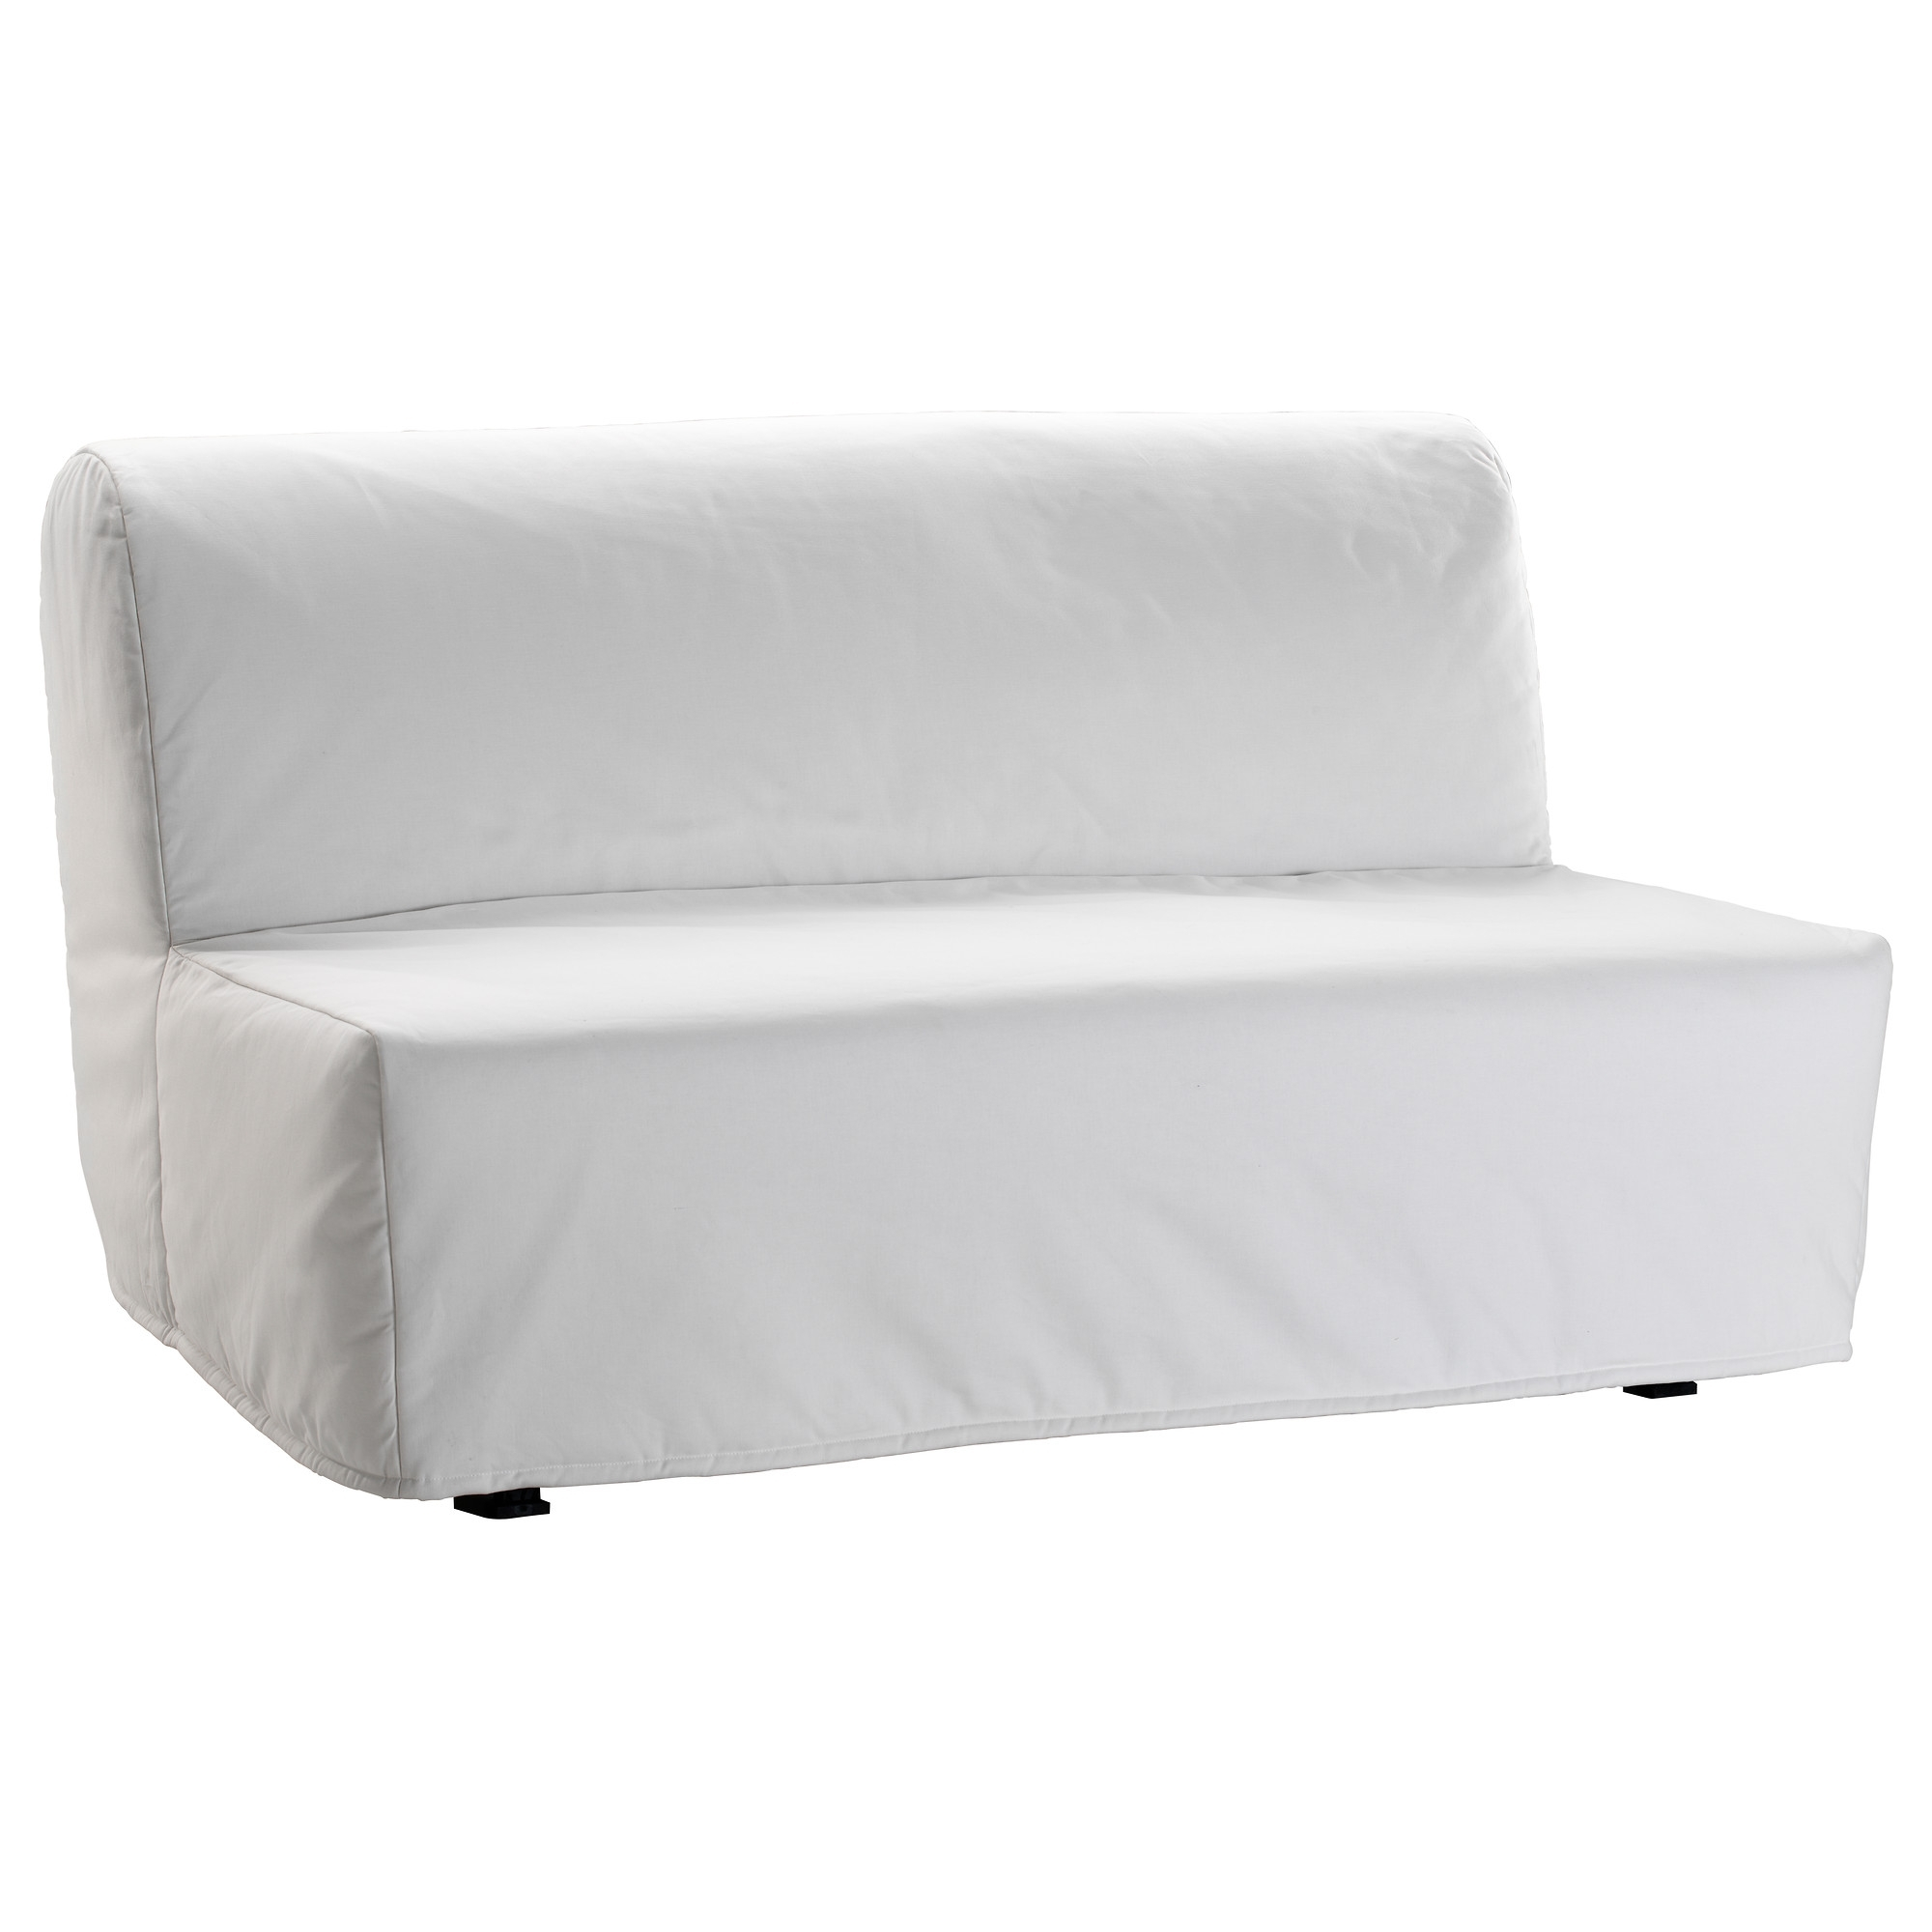 Lycksele Lövås Sleeper Sofa – Ransta White – Ikea With Widely Used Ikea Loveseat Sleeper Sofas (View 3 of 15)